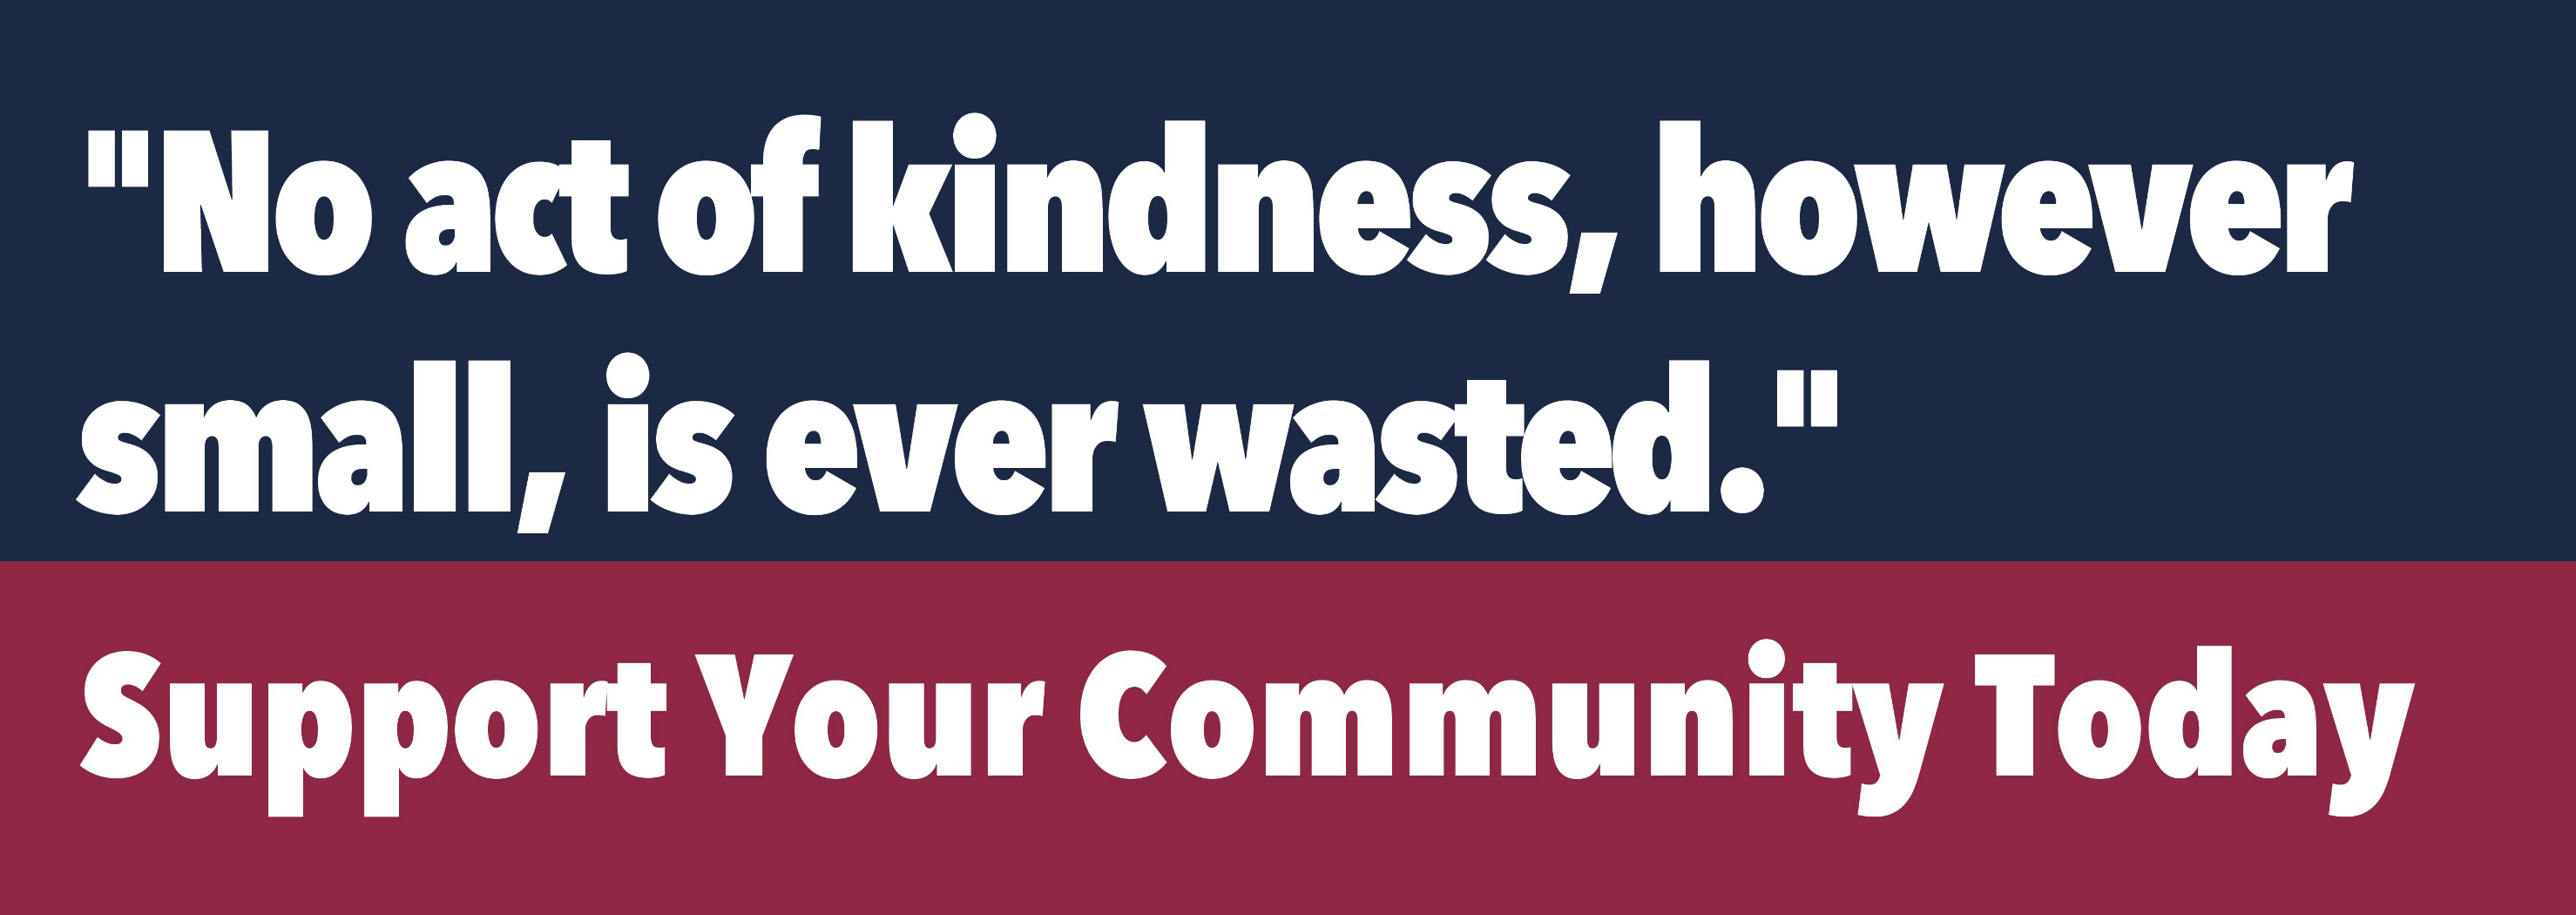 No act of kindness, however small, is ever wasted. Support your community today.